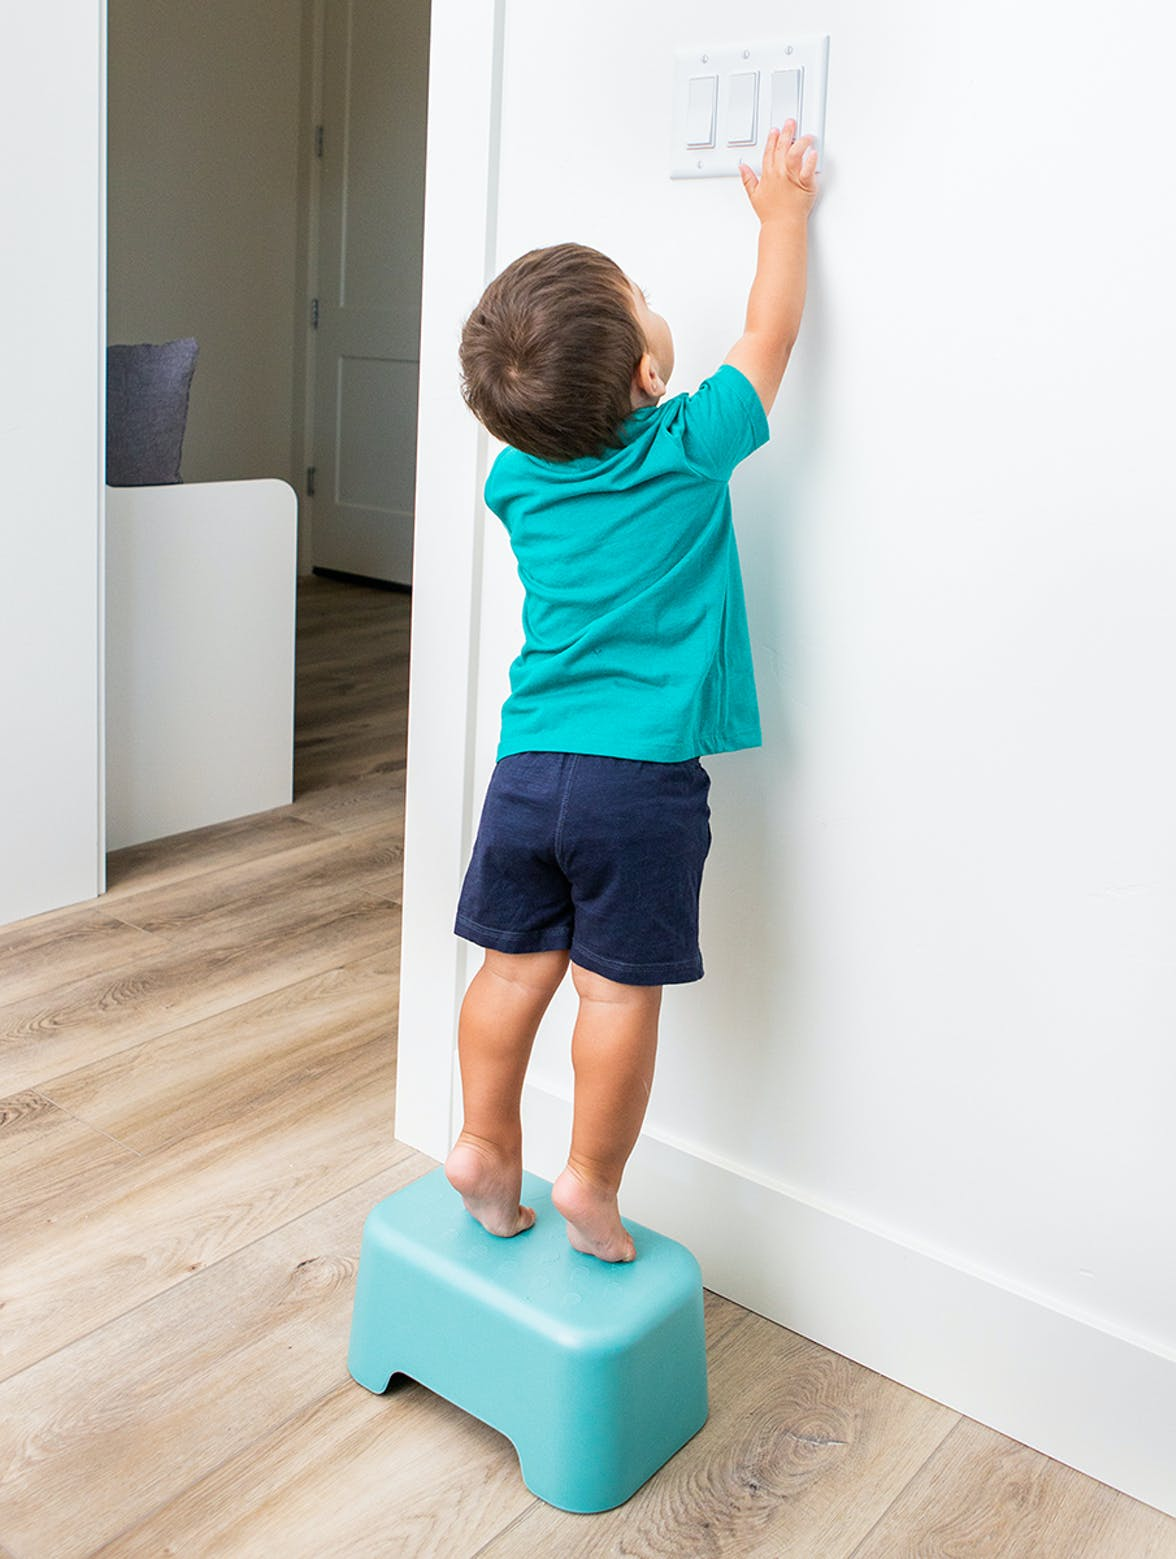 Young child standing on a stool flipping a light switch.